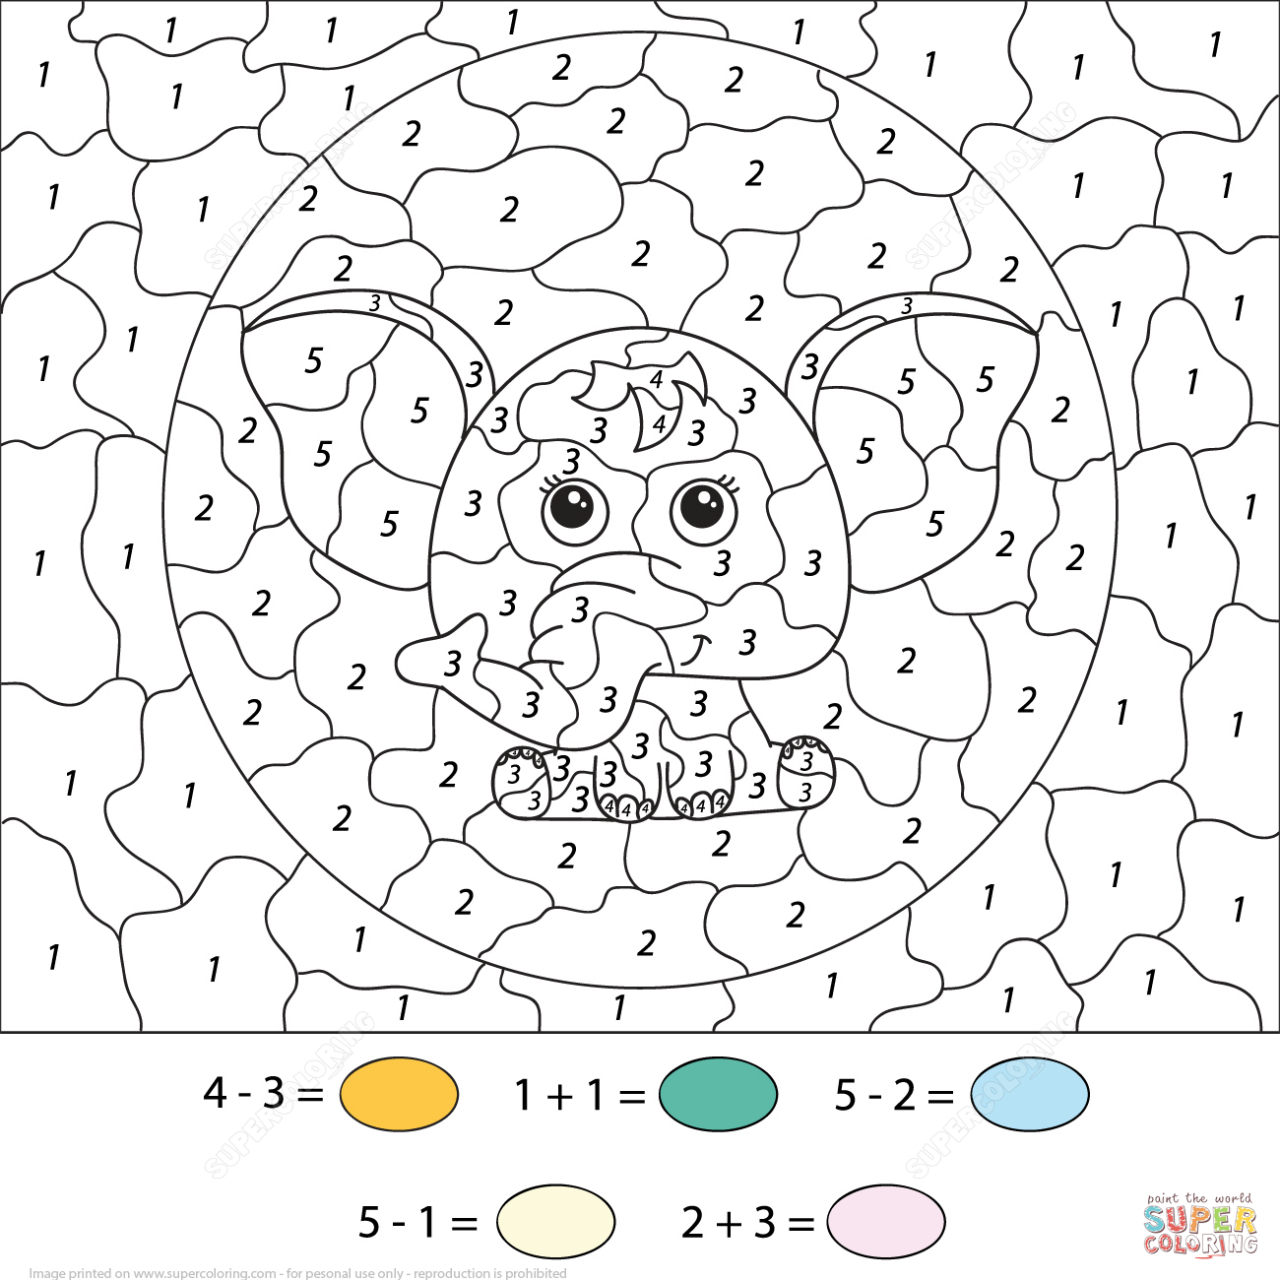 Coloring ~ Colornumber Math Worksheets Authenticlour Numbers | Free Printable Color By Number Addition Worksheets